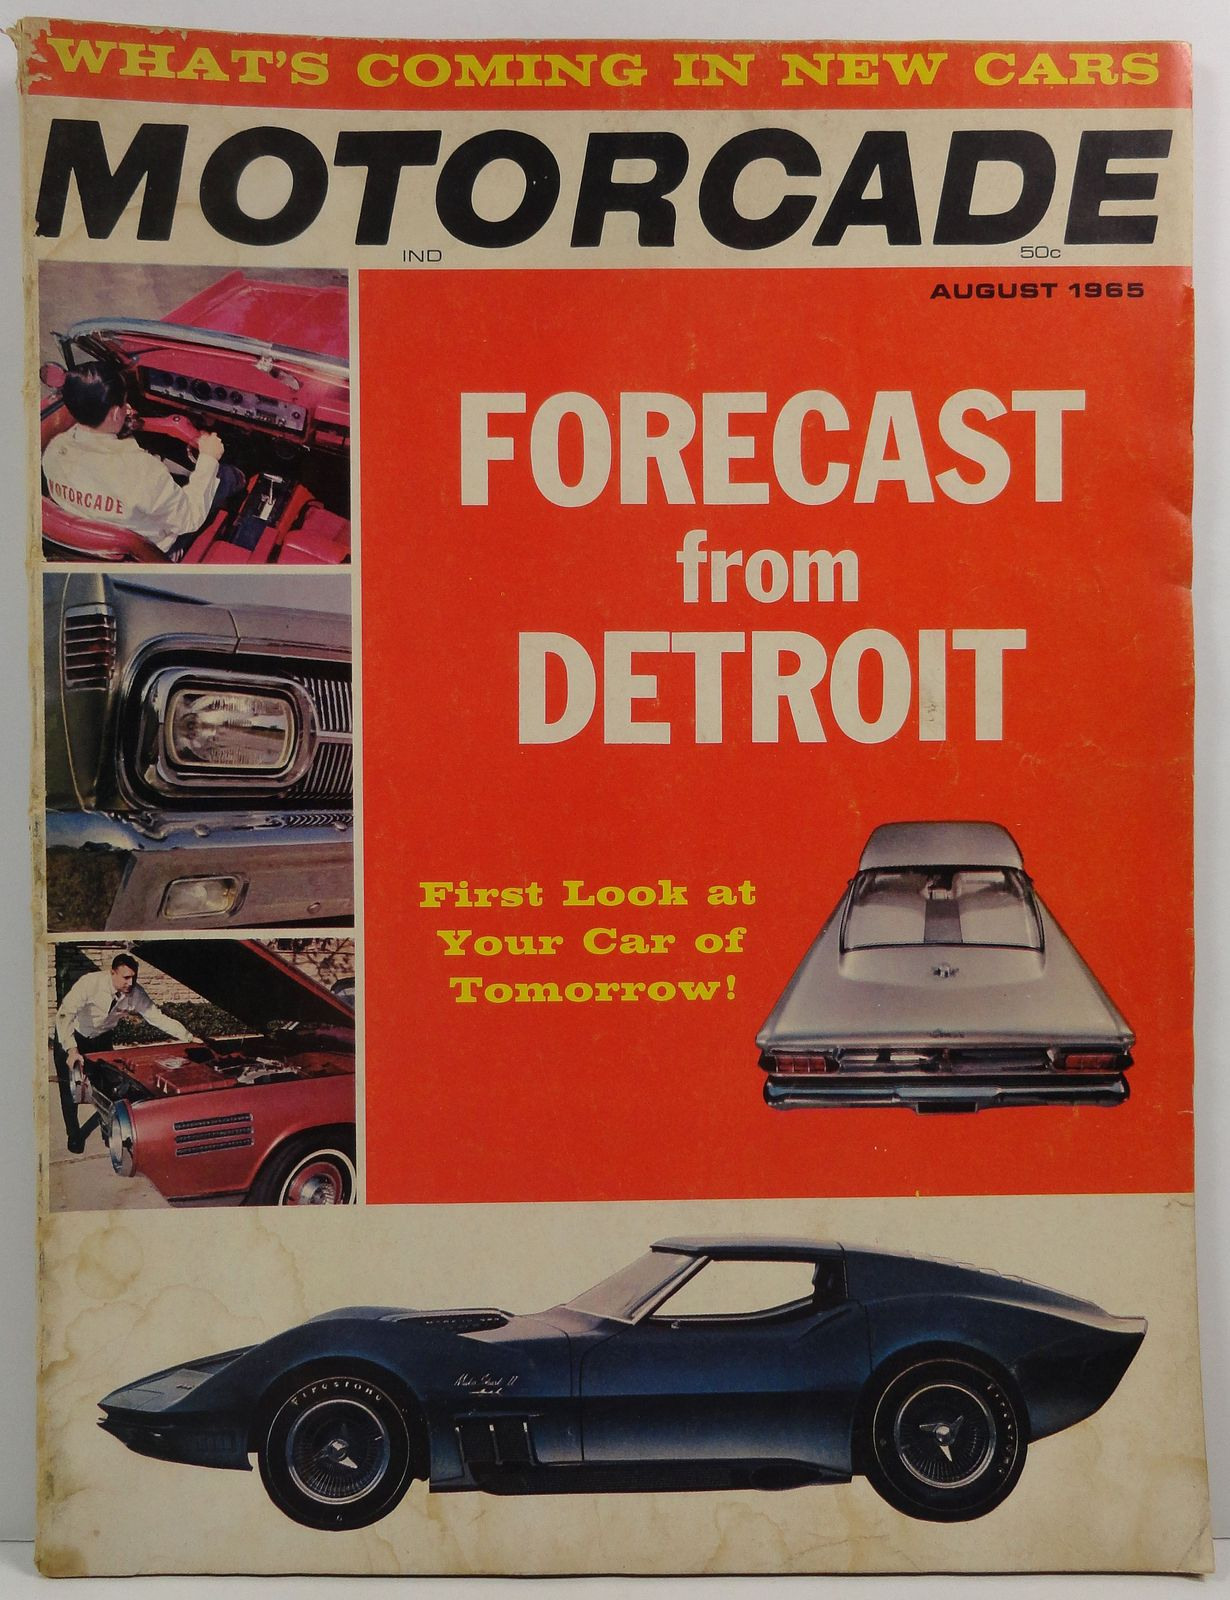 Motorcade Magazine August 1965 Forecast from Detroit